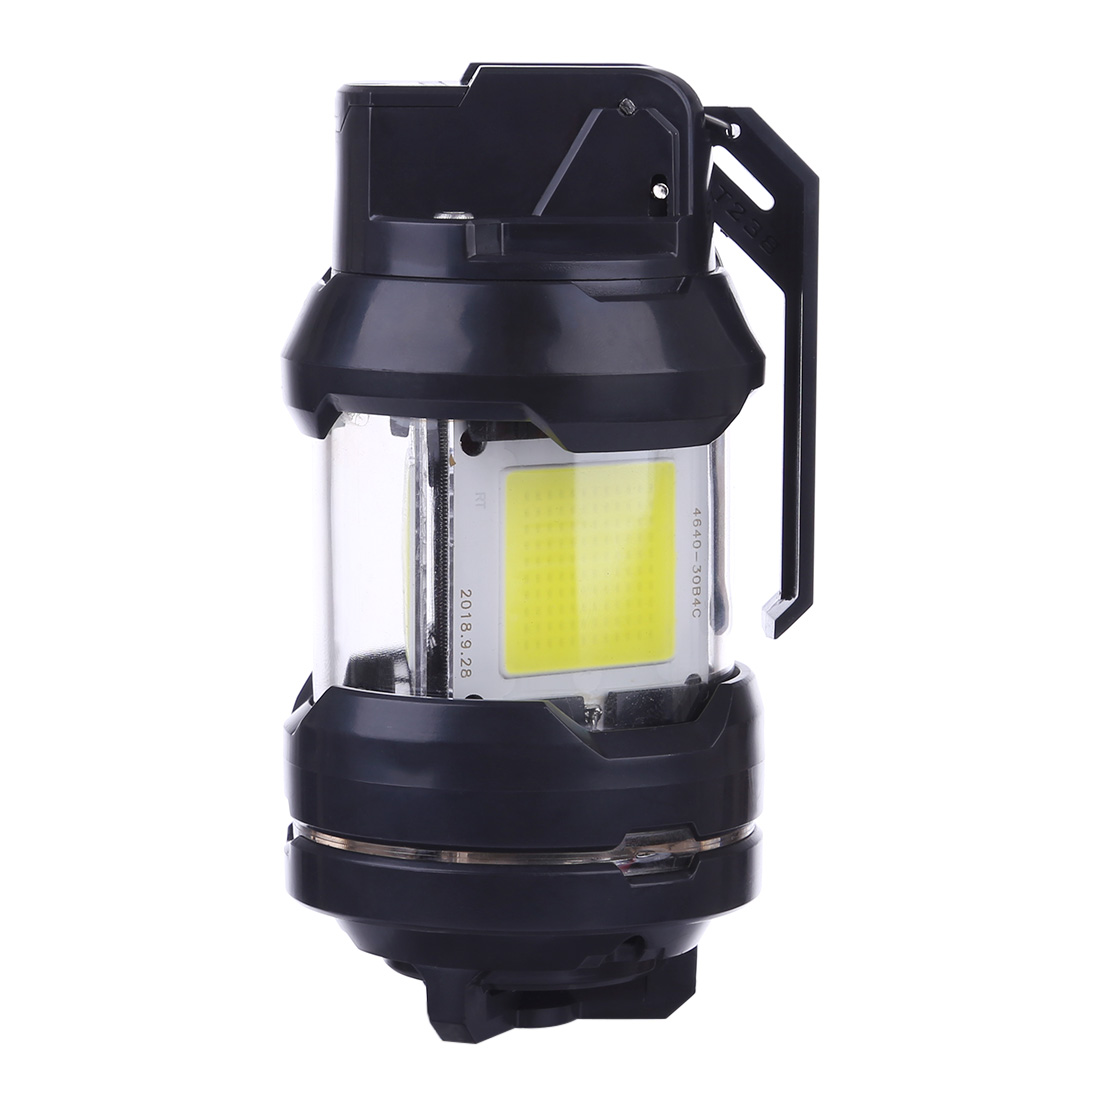 T238 bombe Flash LED fréquence lumineuse bombe paralysante pour Nerf Gel Ball Blaster Airsoft combat nocturne-sans batterie